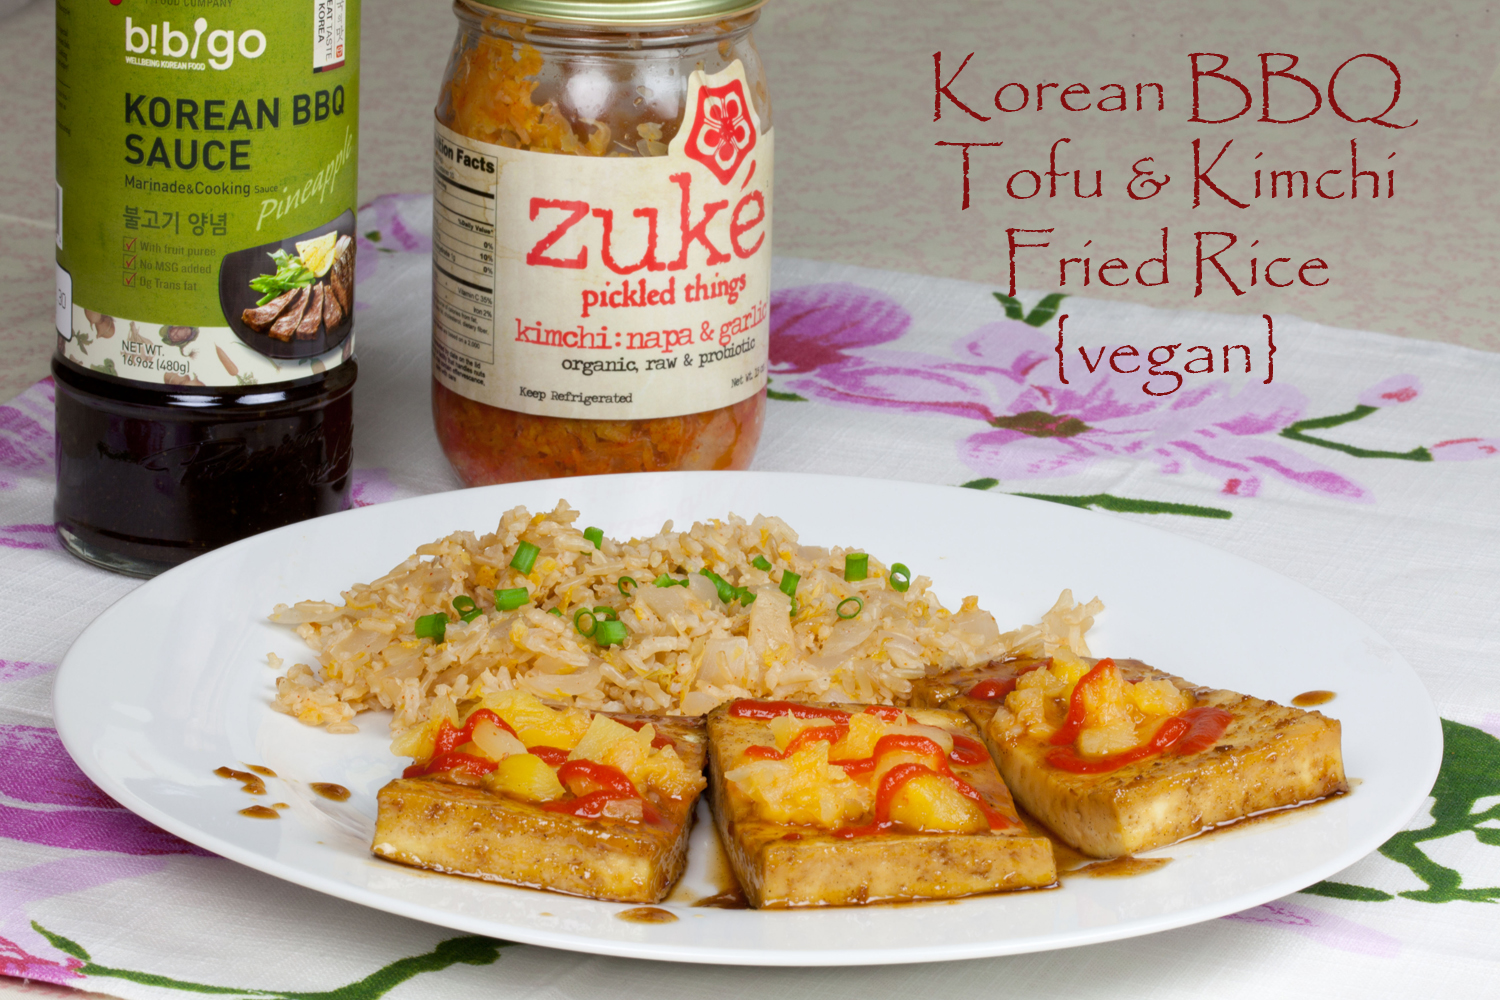 25 delicious healthy and vegan korean recipes vegan korean bbq tofu and kimchi fried rice forumfinder Gallery